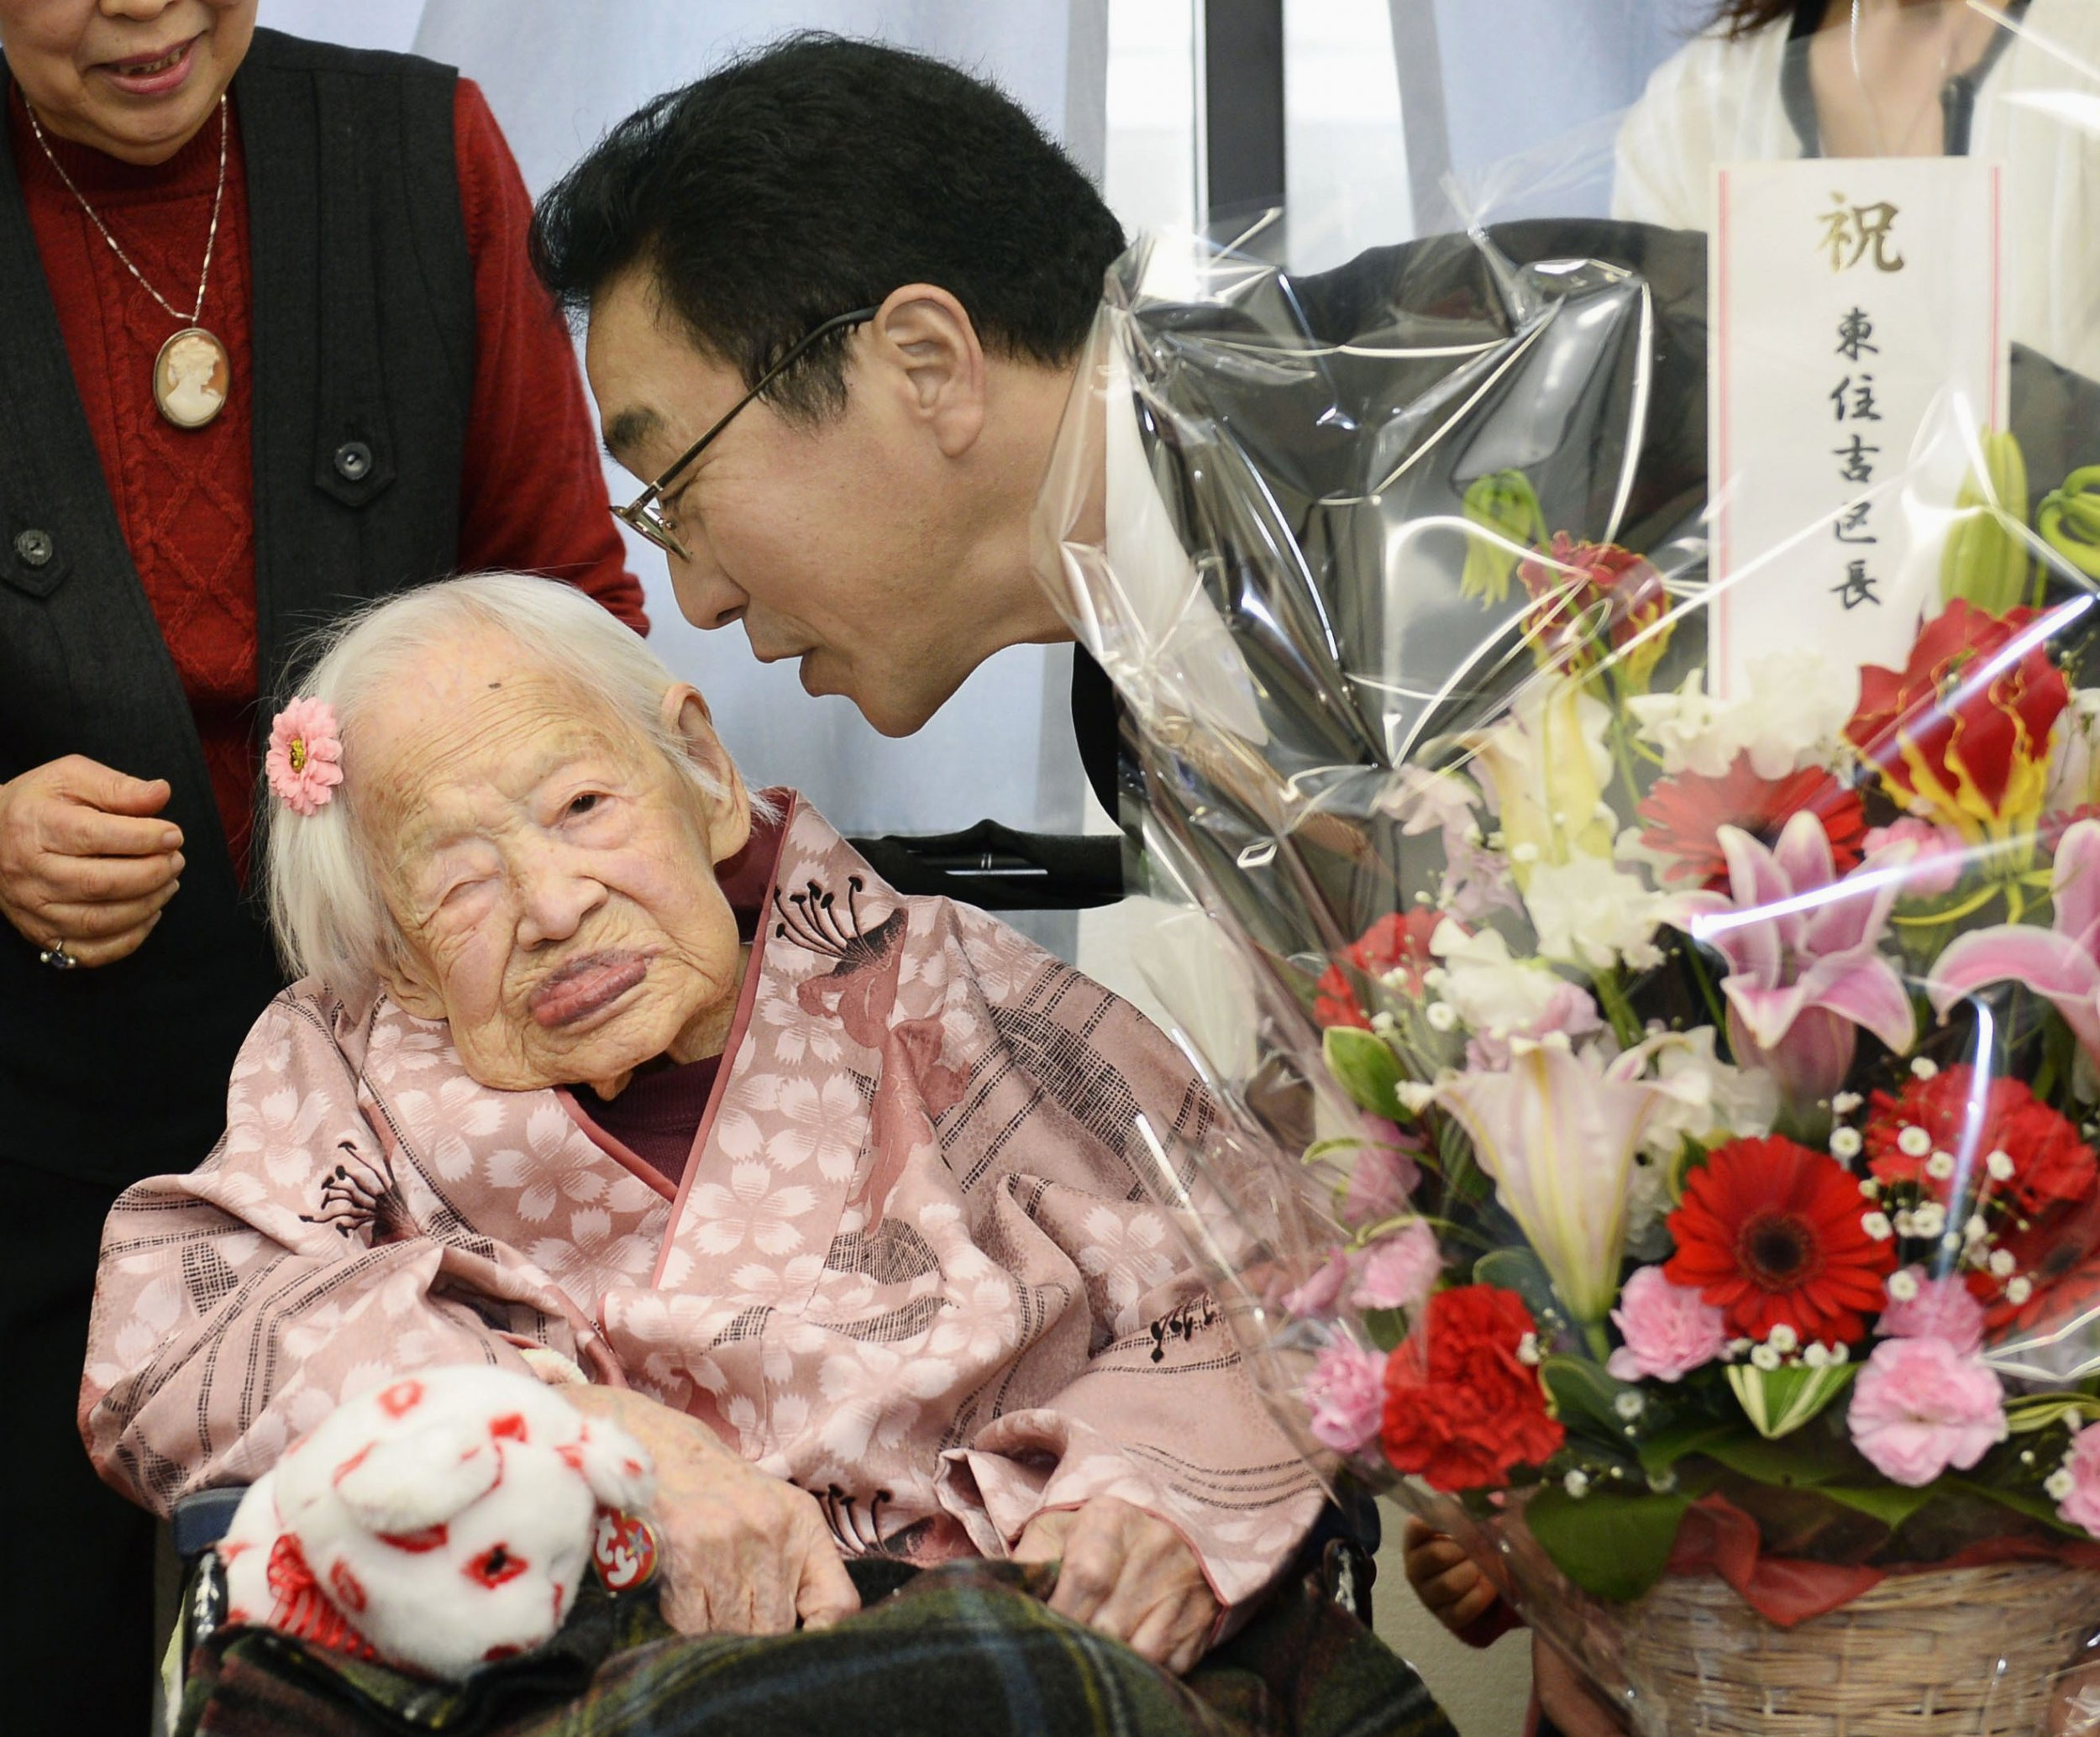 2015-03-05T034425Z_1327025453_GM1EB350W6W01_RTRMADP_3_JAPAN-OLDEST-WOMAN